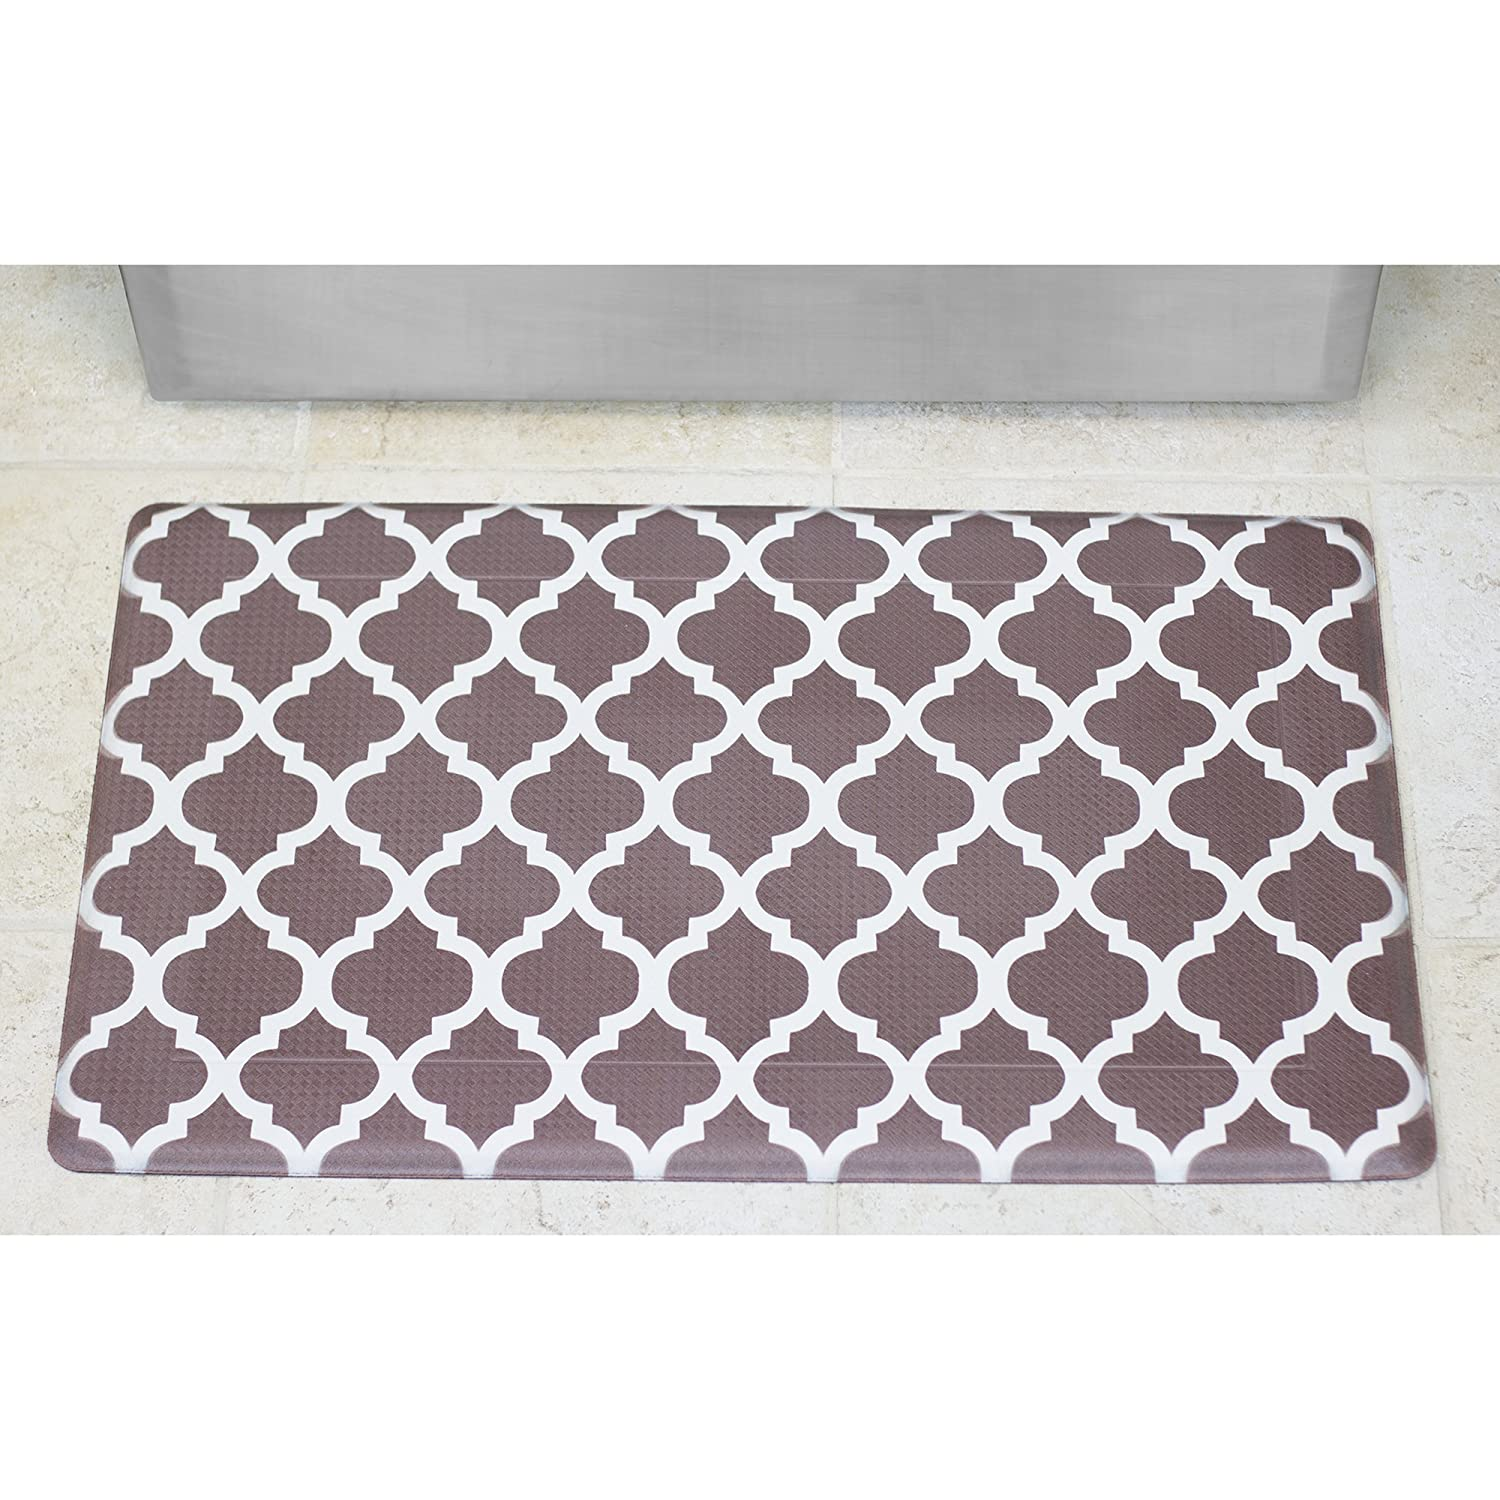 Amazon.com: Chef Gear Quatrefoil Anti-Fatigue Comfort Memory Foam ...